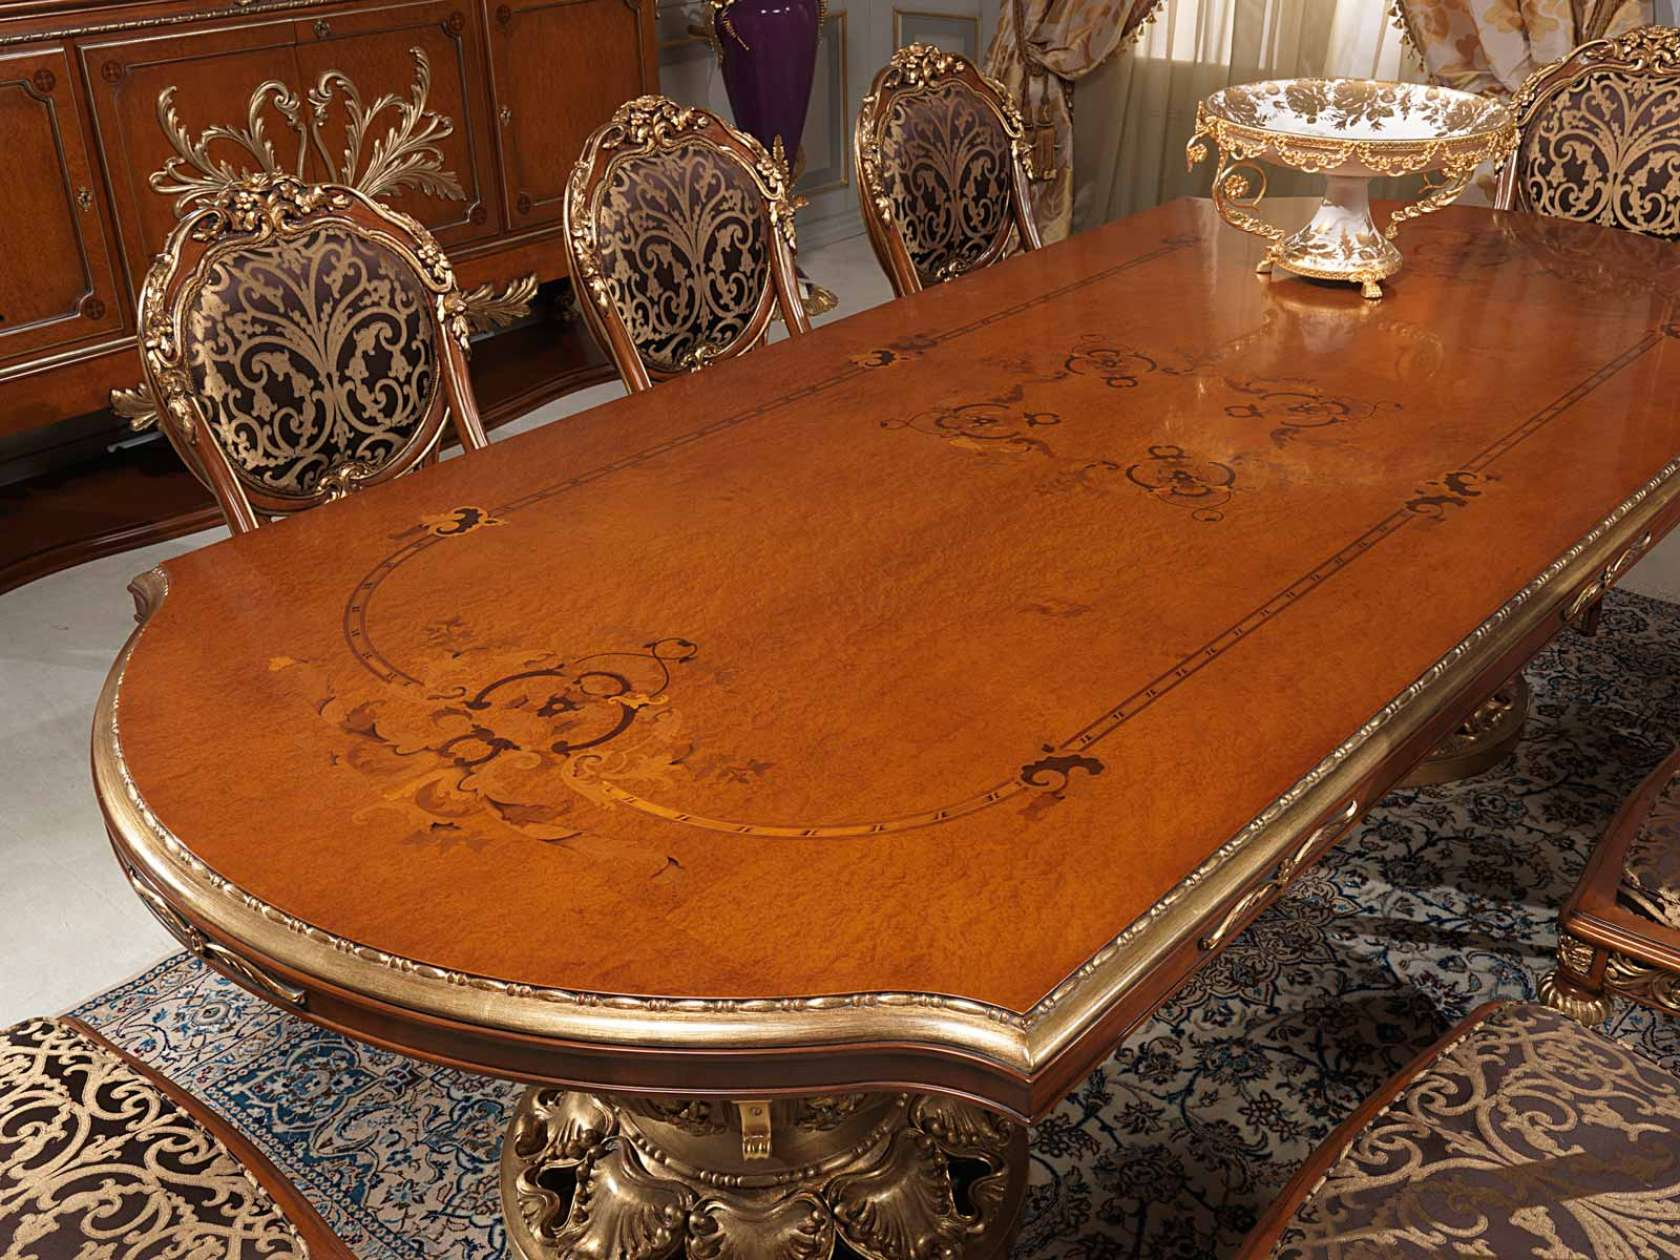 Carved and inlaid table in Louis XVI style | Vimercati Classic ...